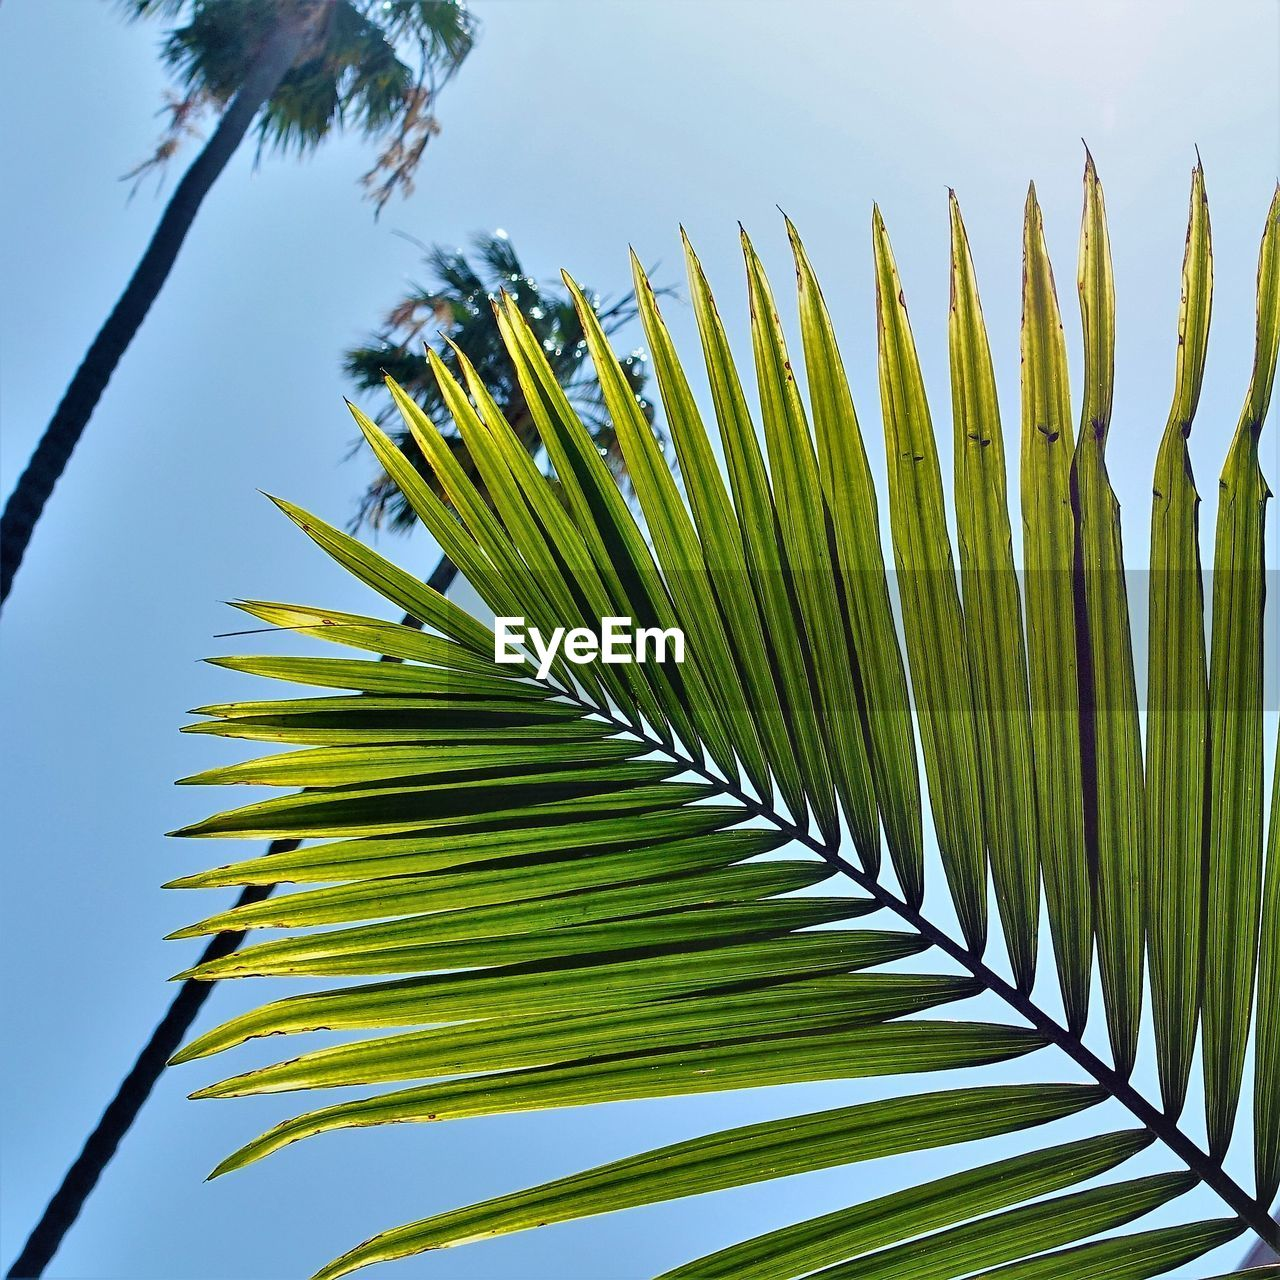 plant, growth, green color, tree, beauty in nature, palm tree, nature, leaf, no people, day, sky, tropical climate, palm leaf, plant part, close-up, low angle view, outdoors, freshness, tranquility, frond, leaves, coconut palm tree